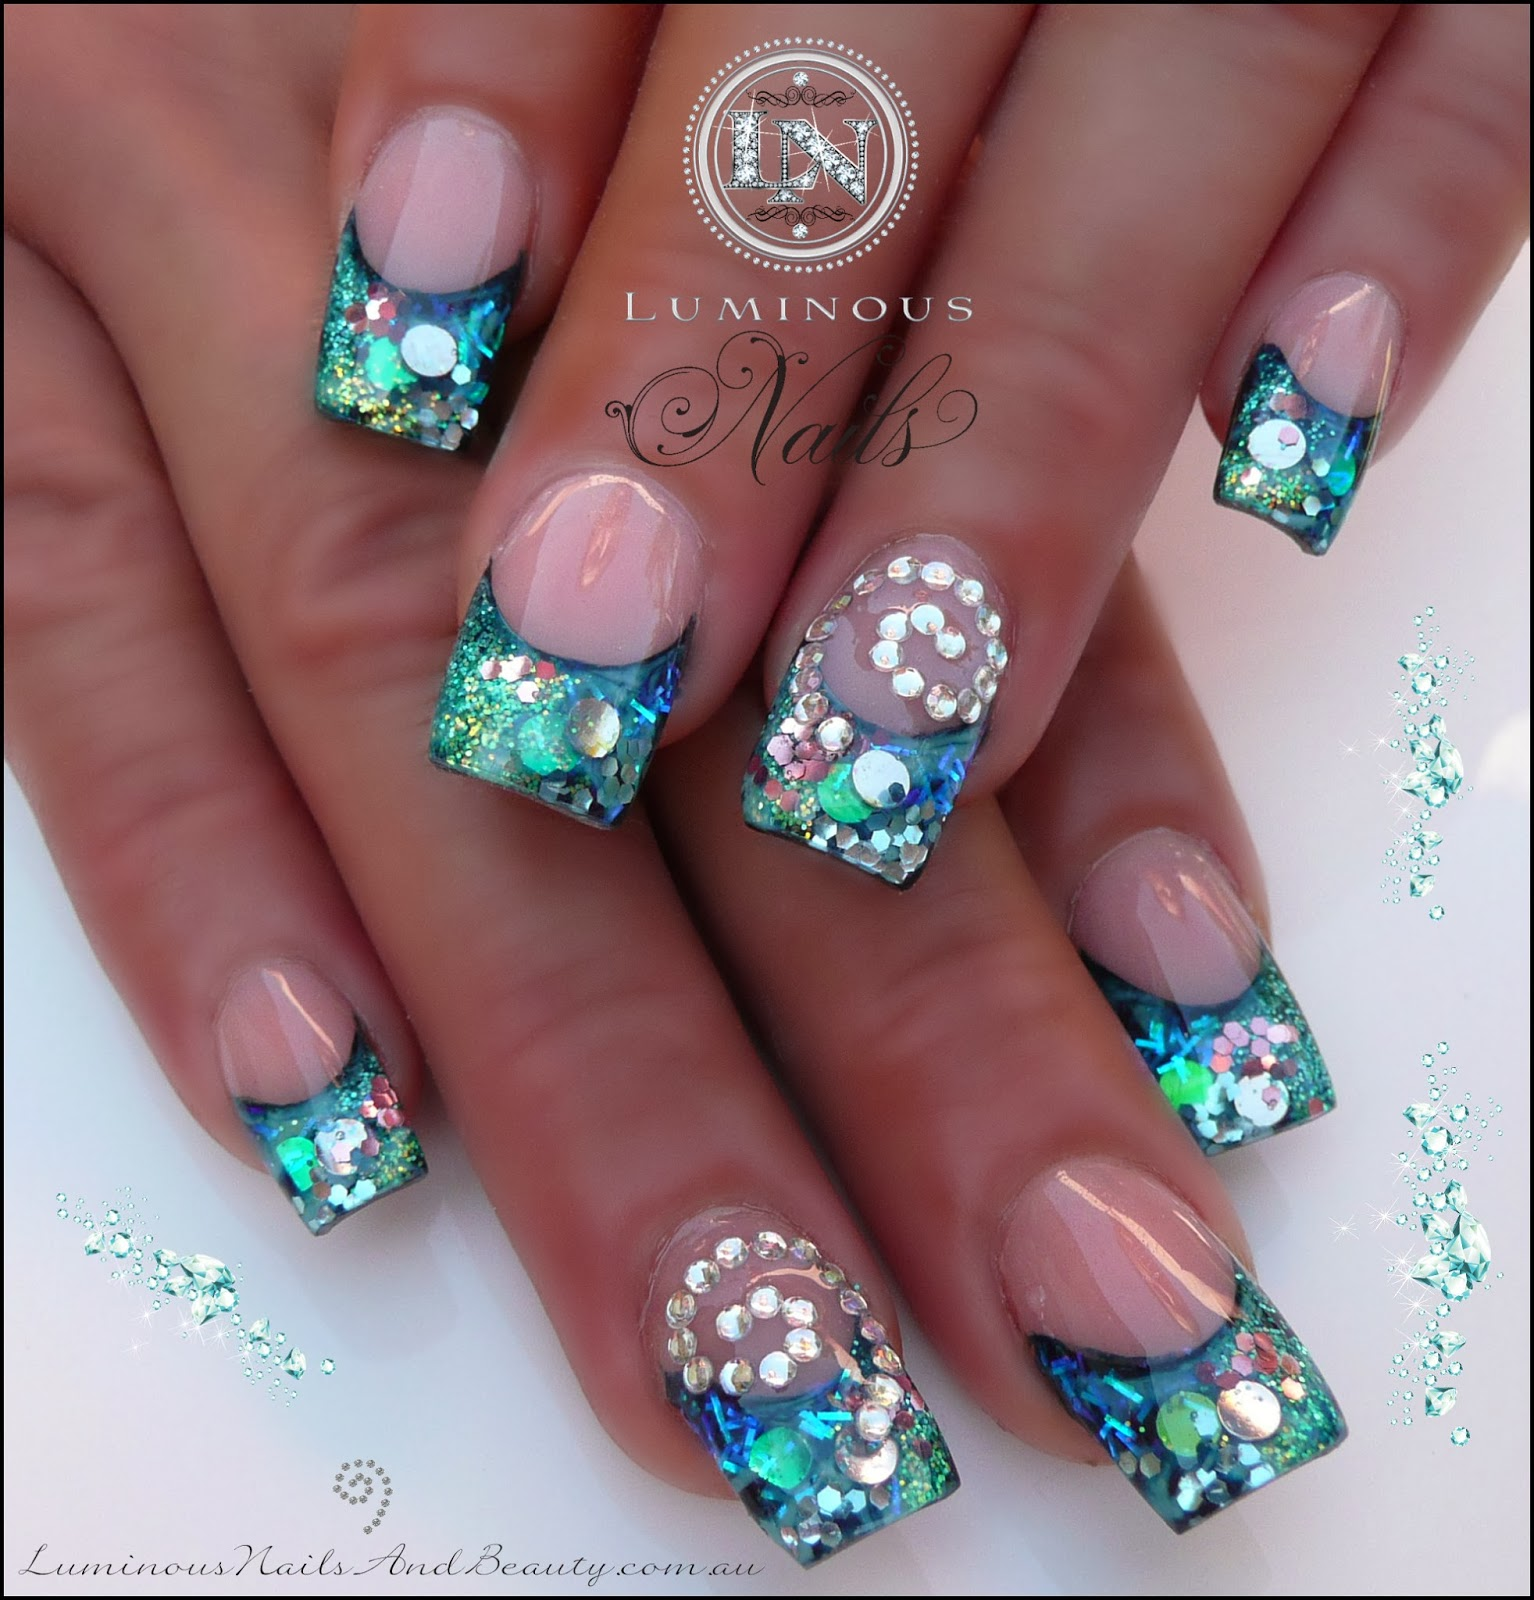 Luminous Nails November 2013